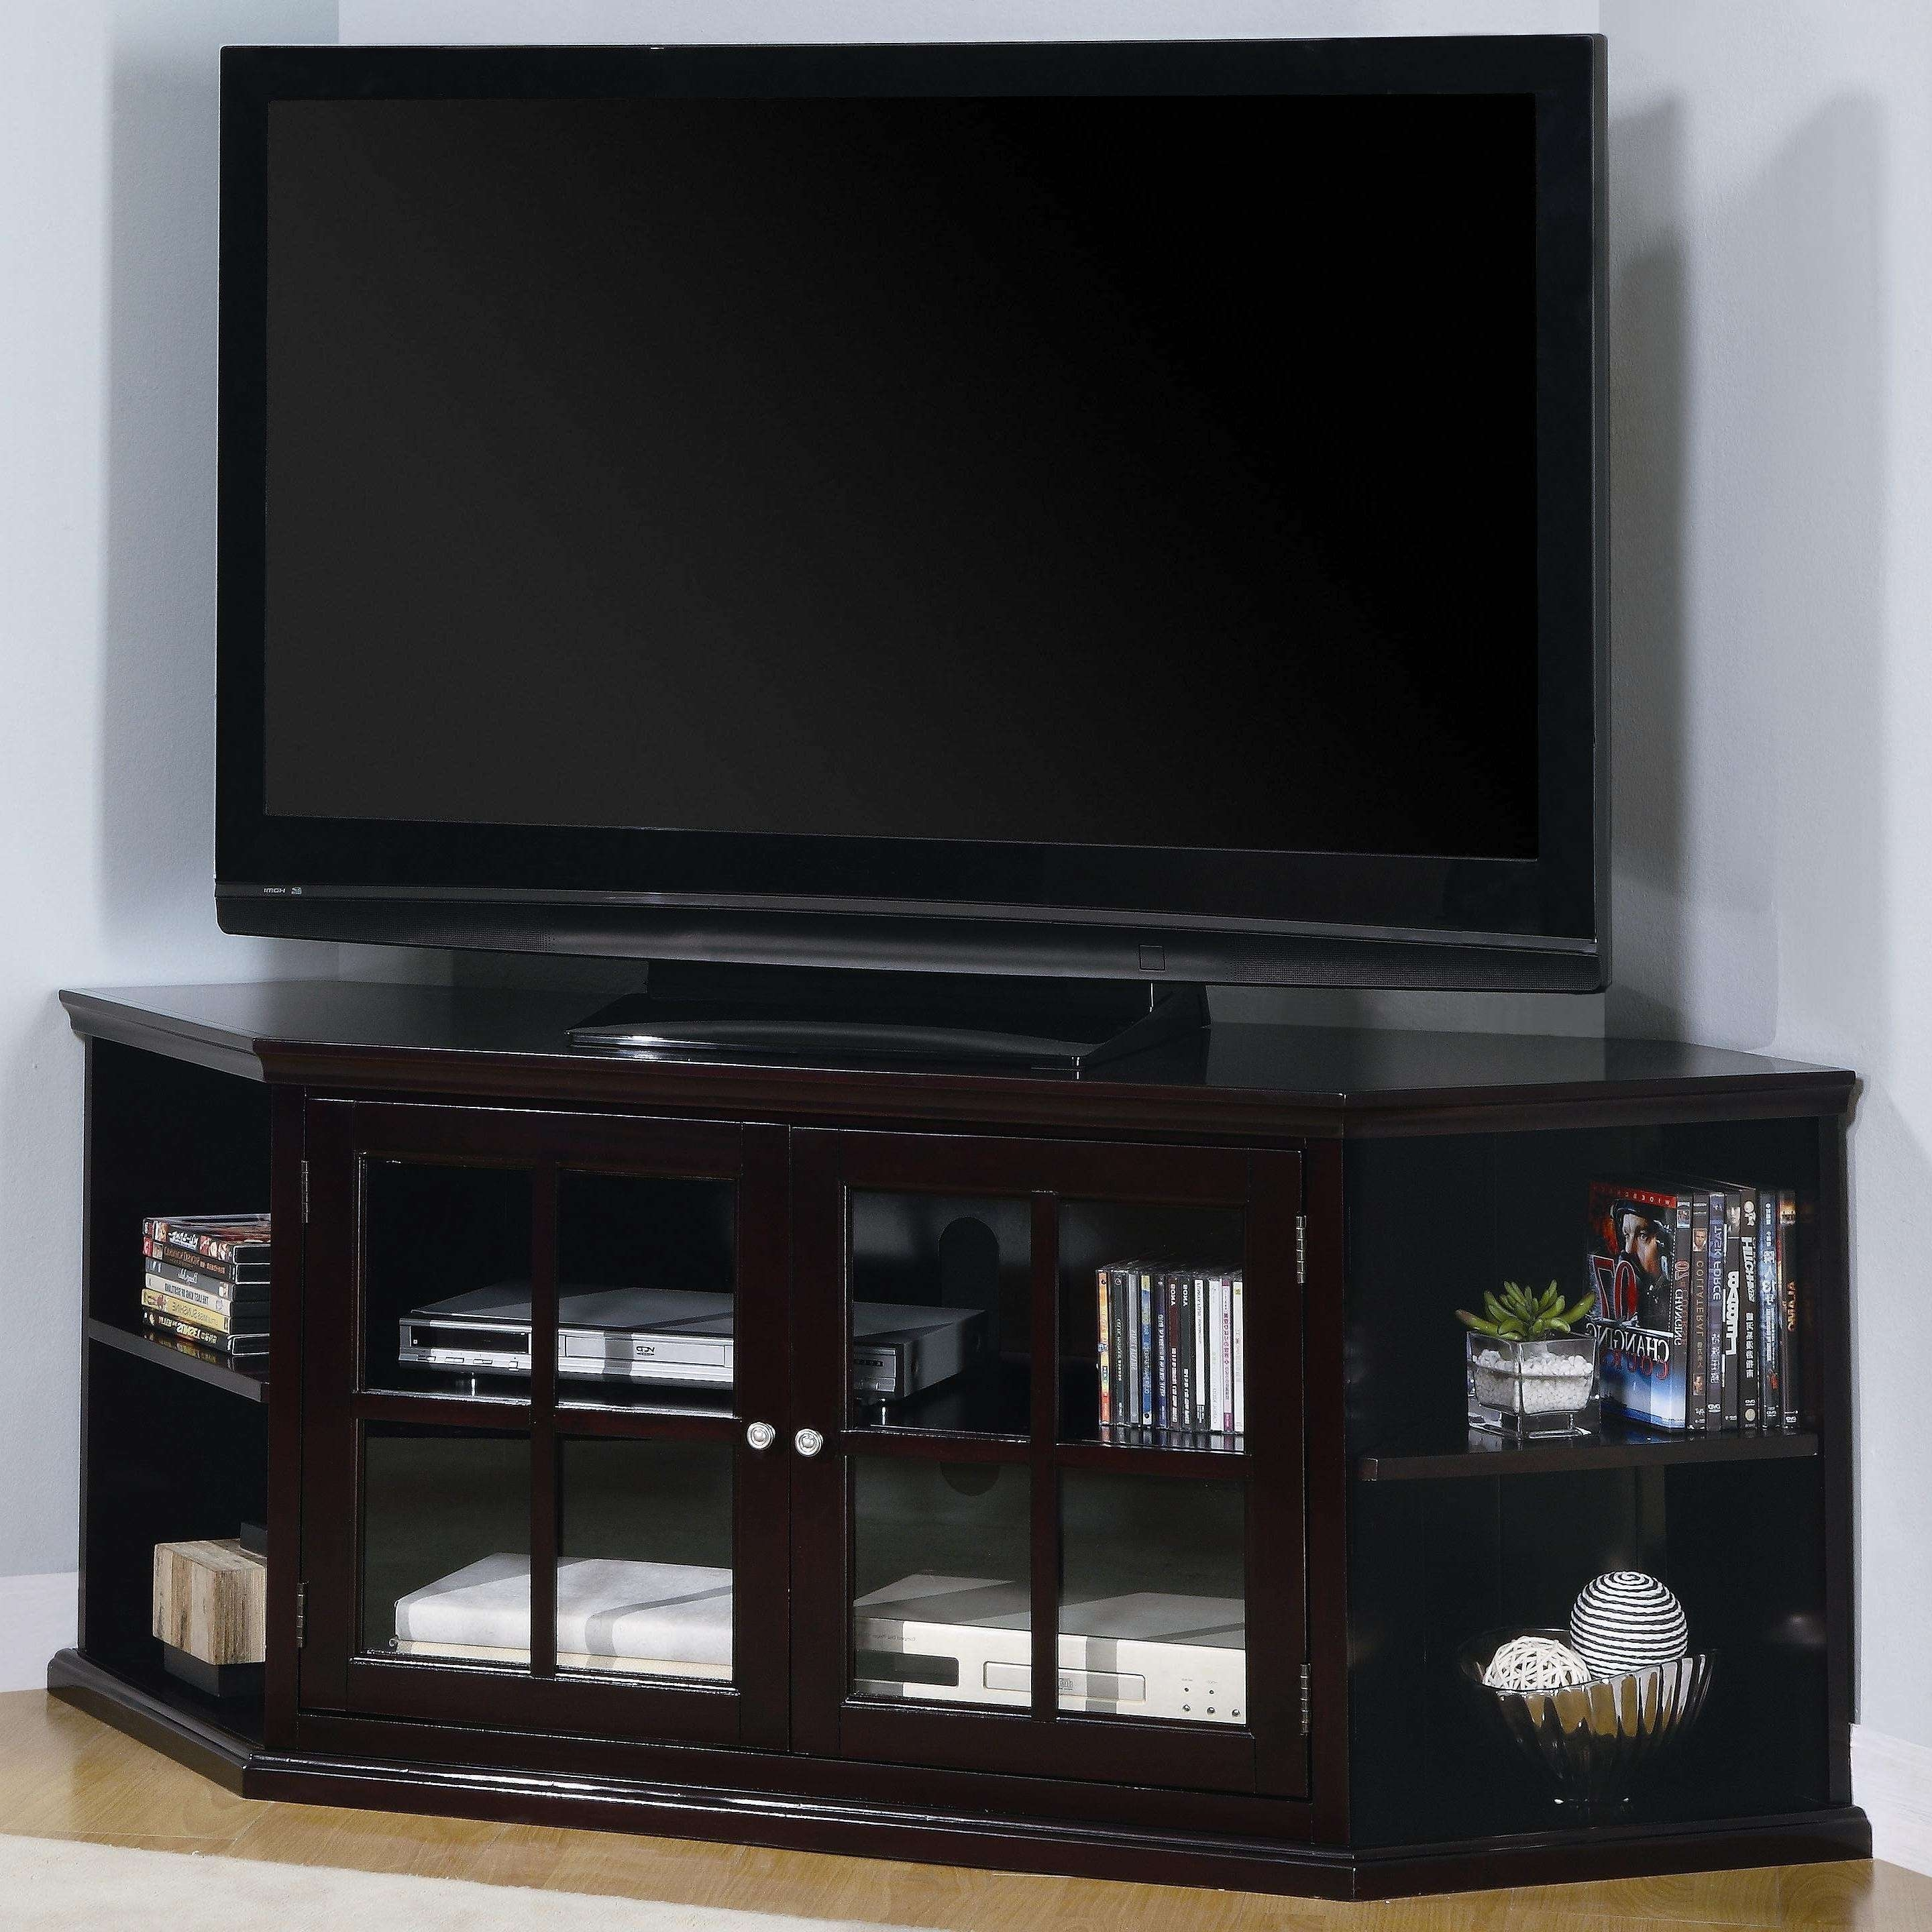 Living Room : Living Room Furniture Pop Up Tv Cabinet And Black With Regard To Black Corner Tv Cabinets With Glass Doors (View 12 of 20)